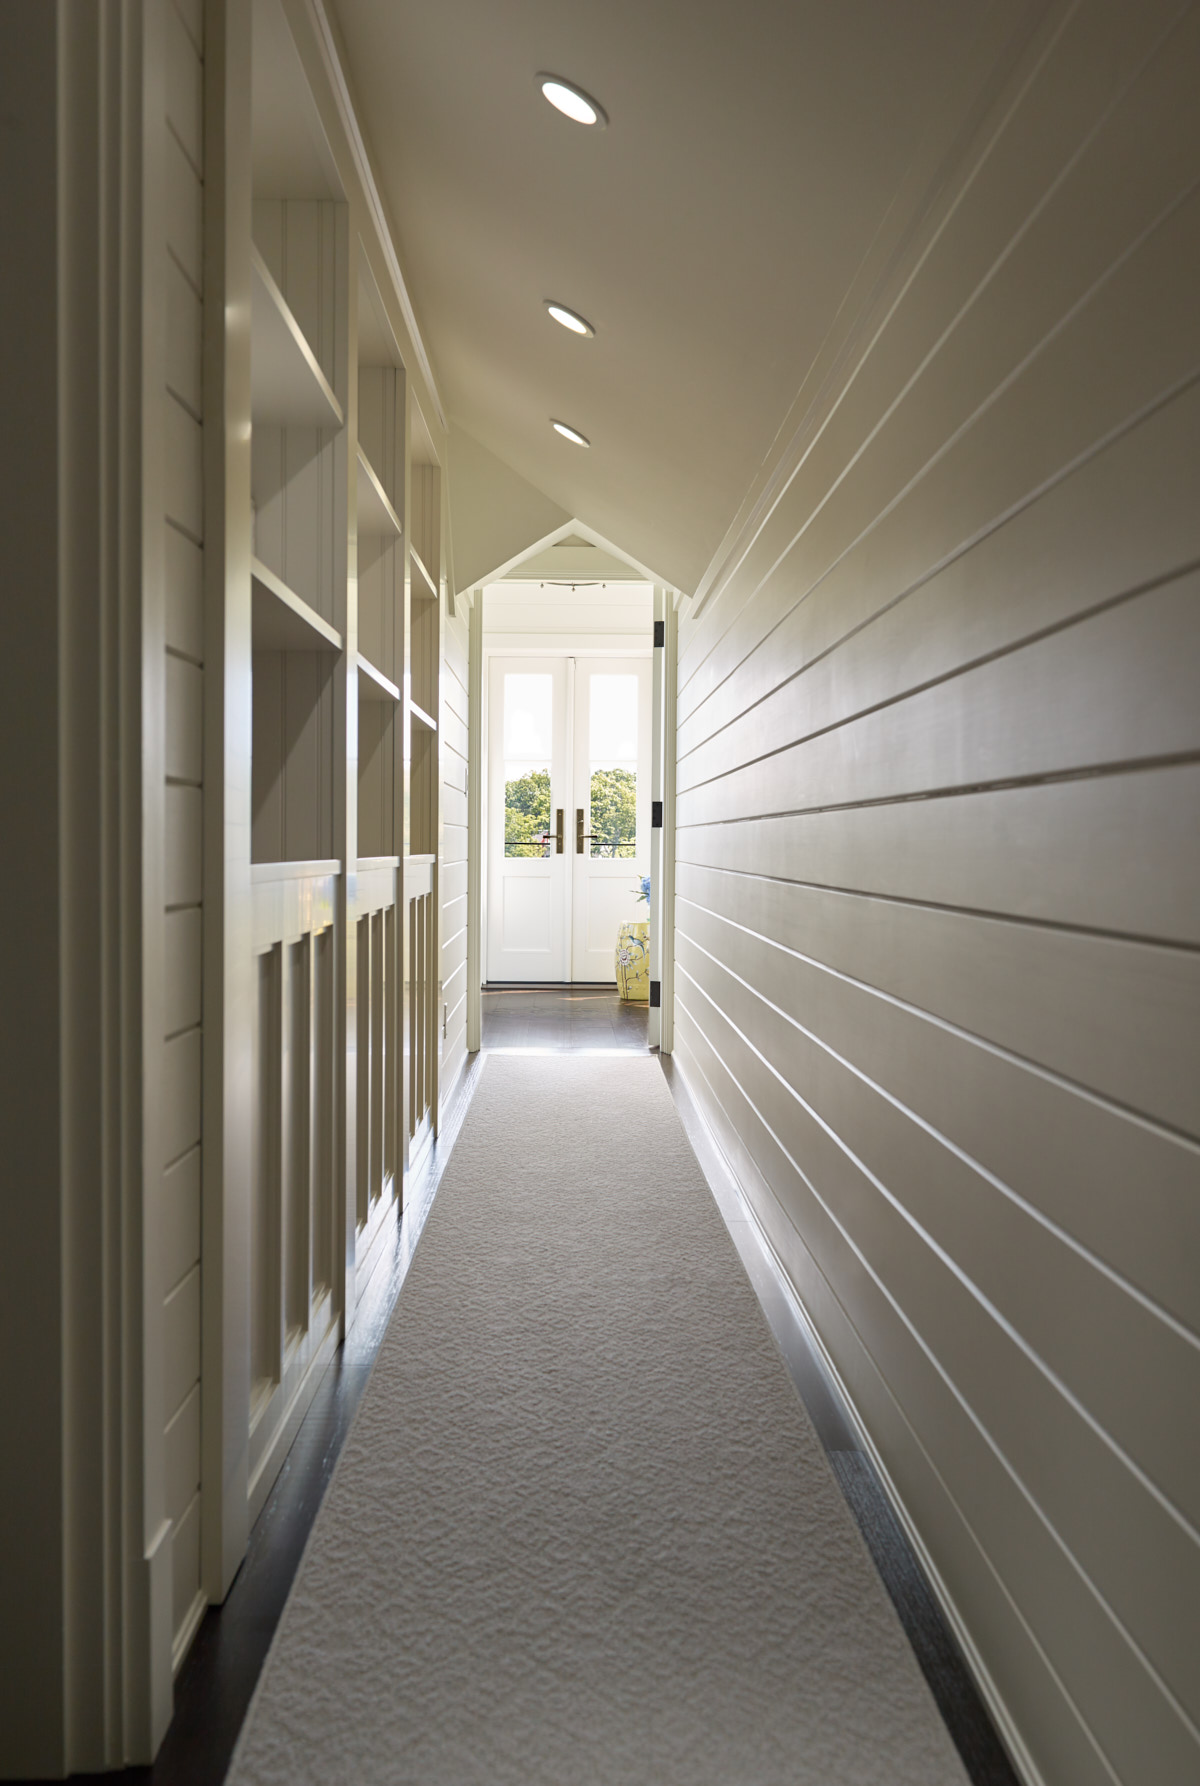 A view of the hallway with storage and direct sight to the french doors.